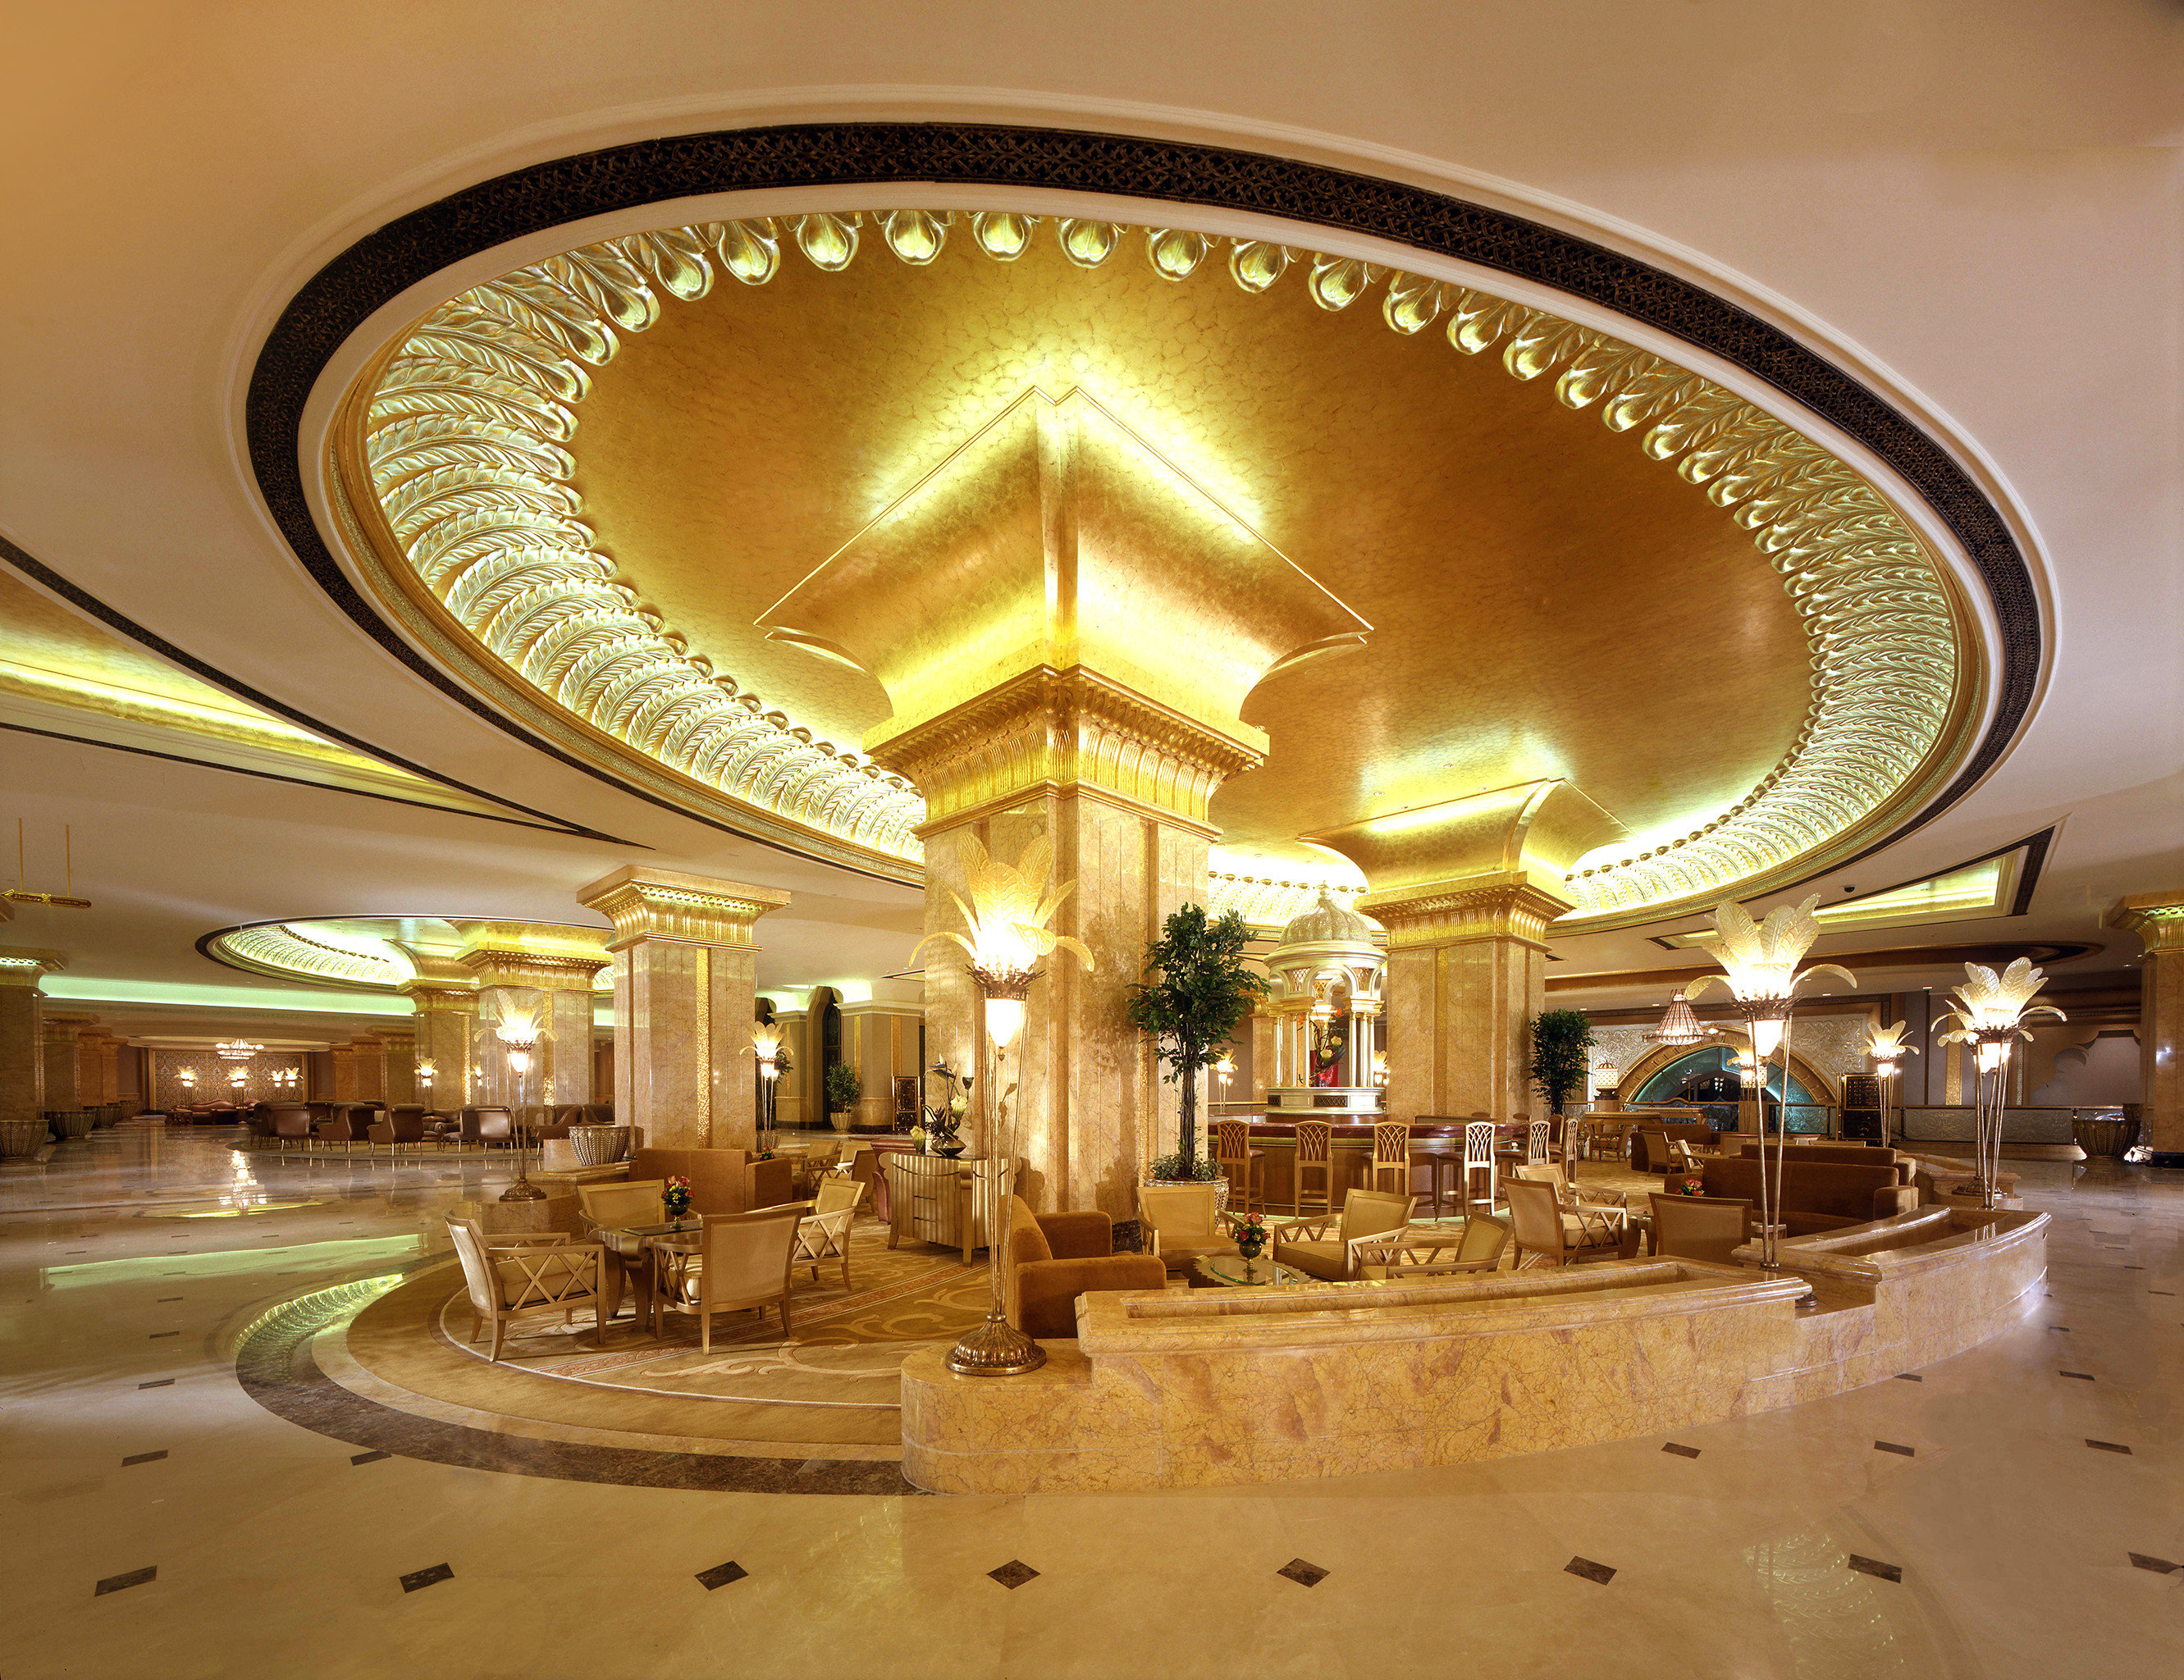 Bar Dining Drink Eat Elegant Luxury Modern Lobby building palace lighting function hall plaza ballroom opera house